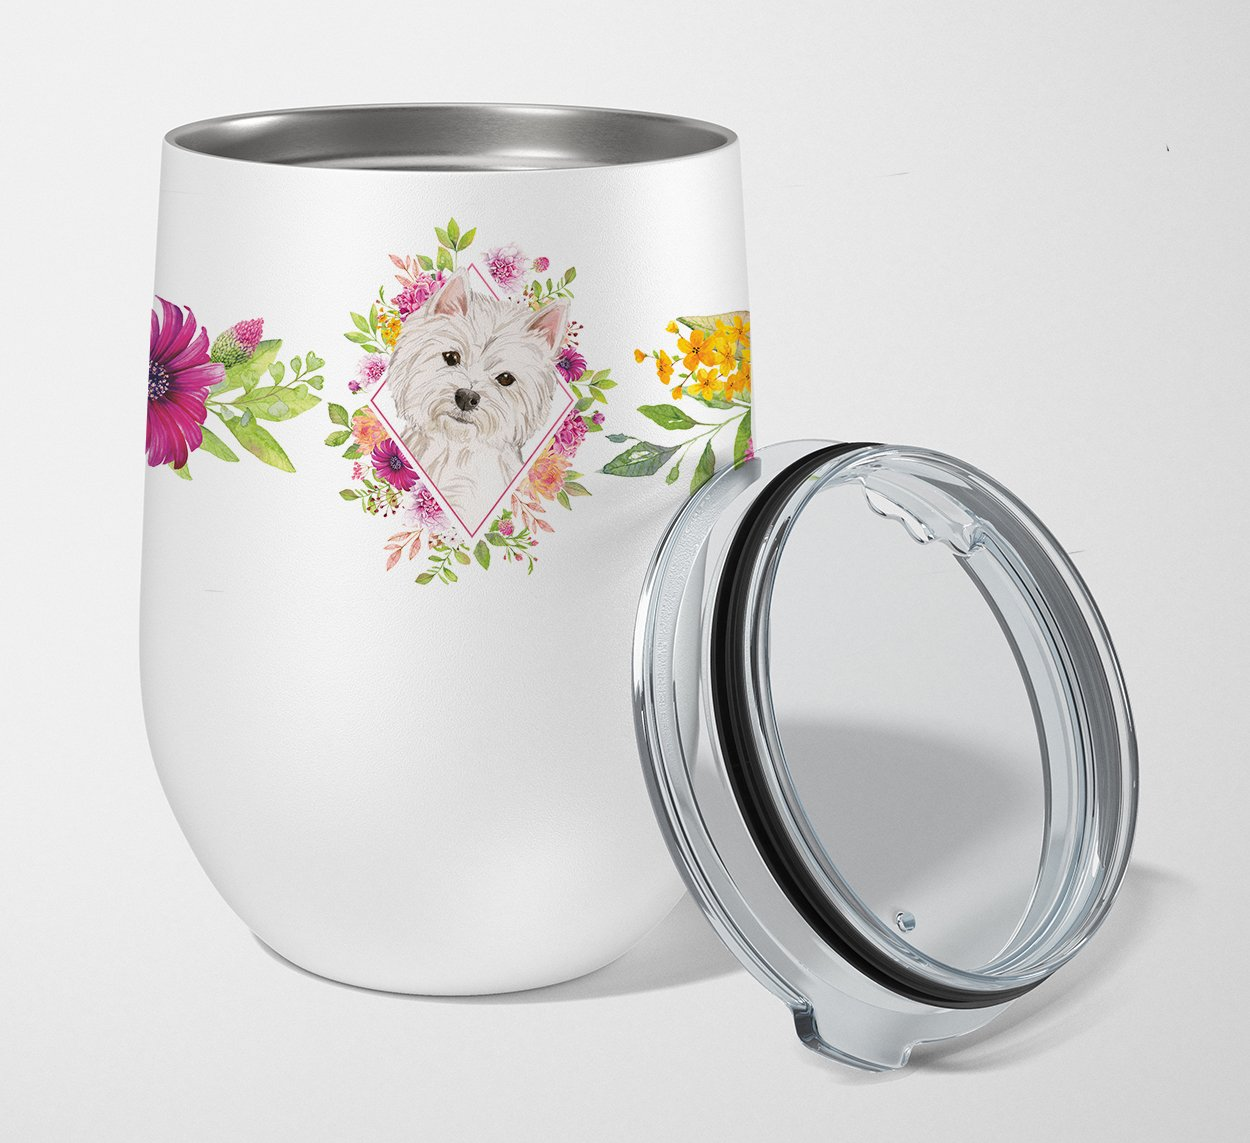 Westie  Pink Flowers Stainless Steel 12 oz Stemless Wine Glass CK4203TBL12 by Caroline's Treasures